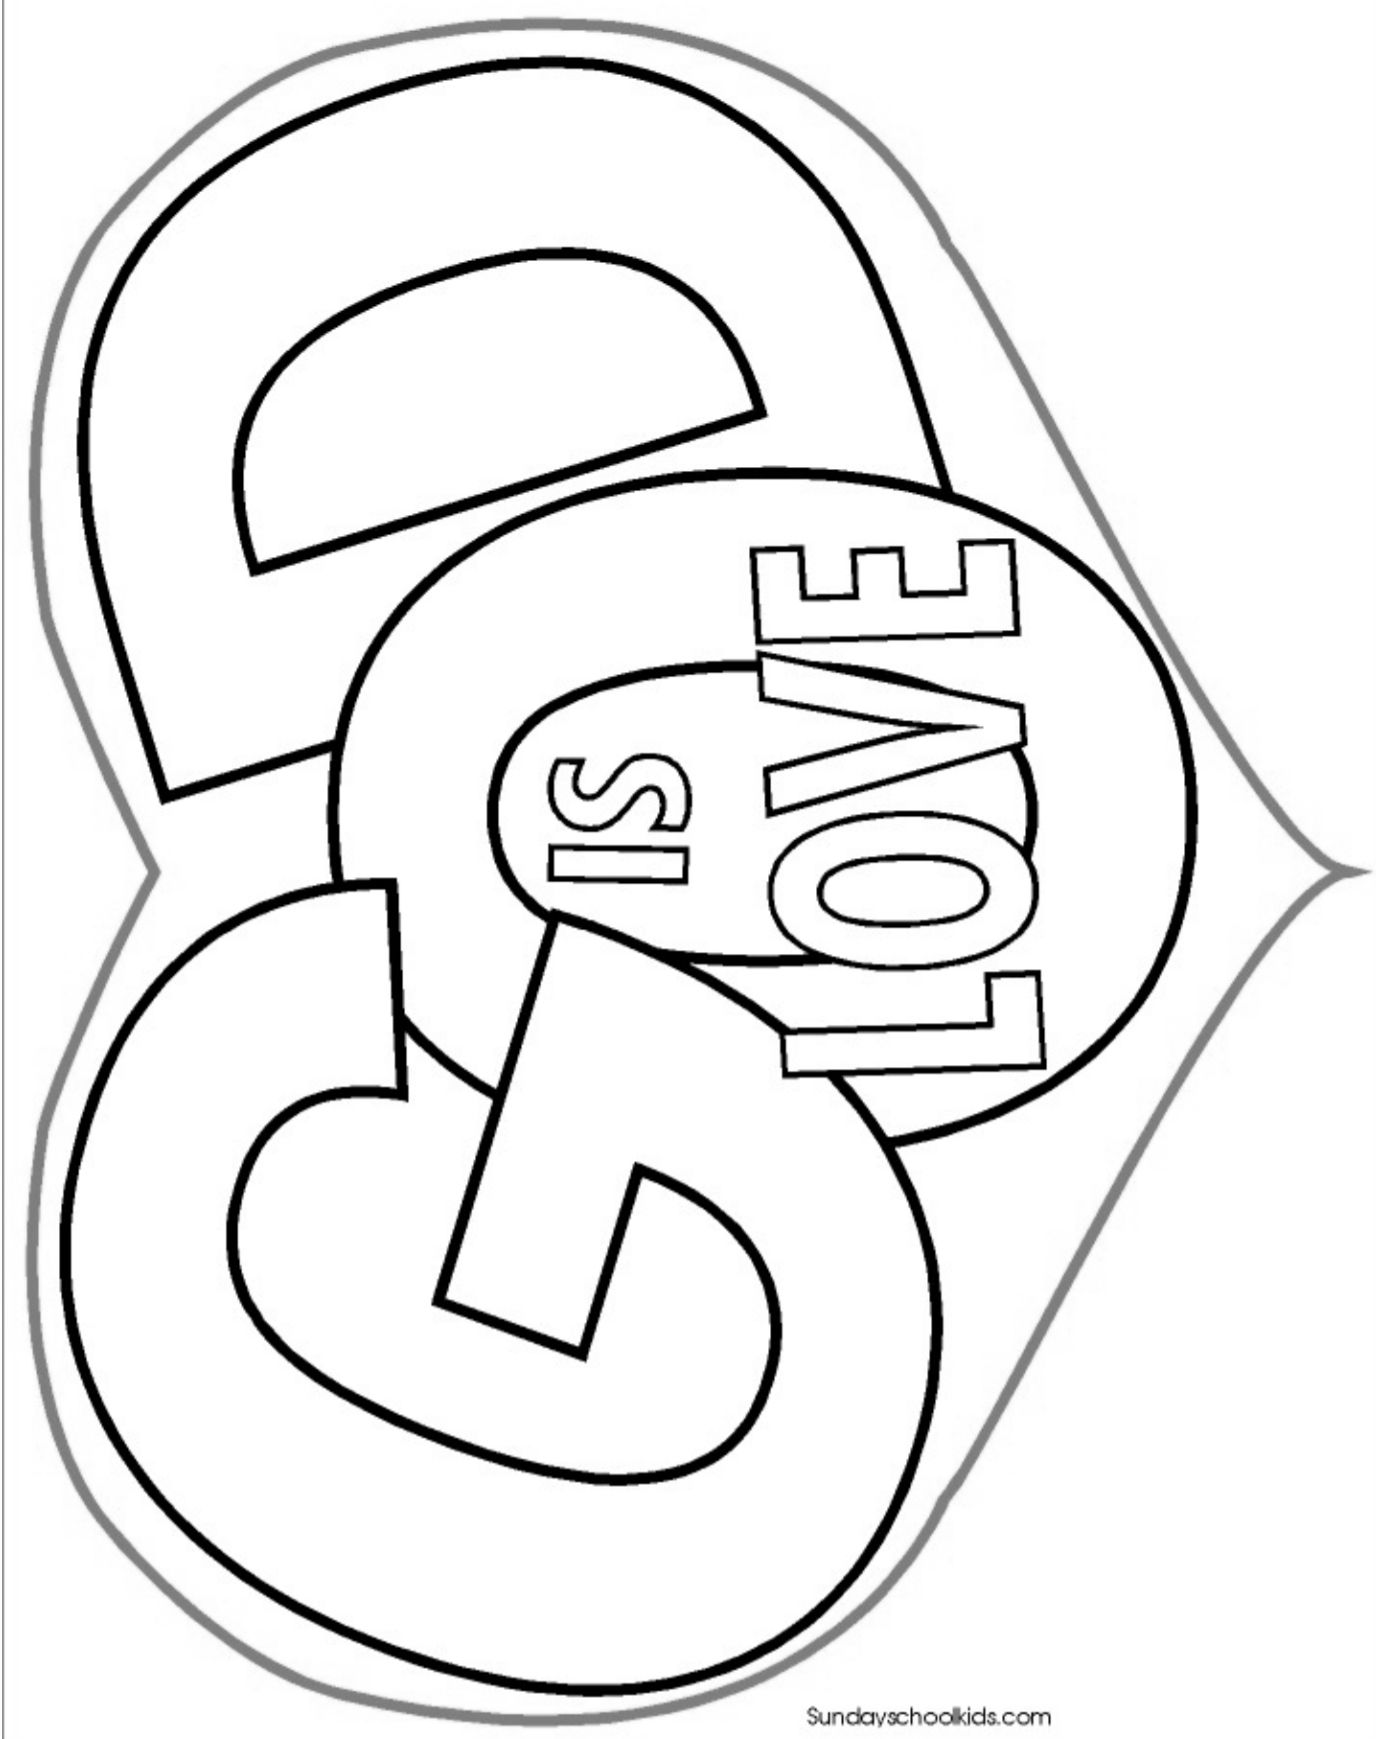 god coloring pages kids - photo#25